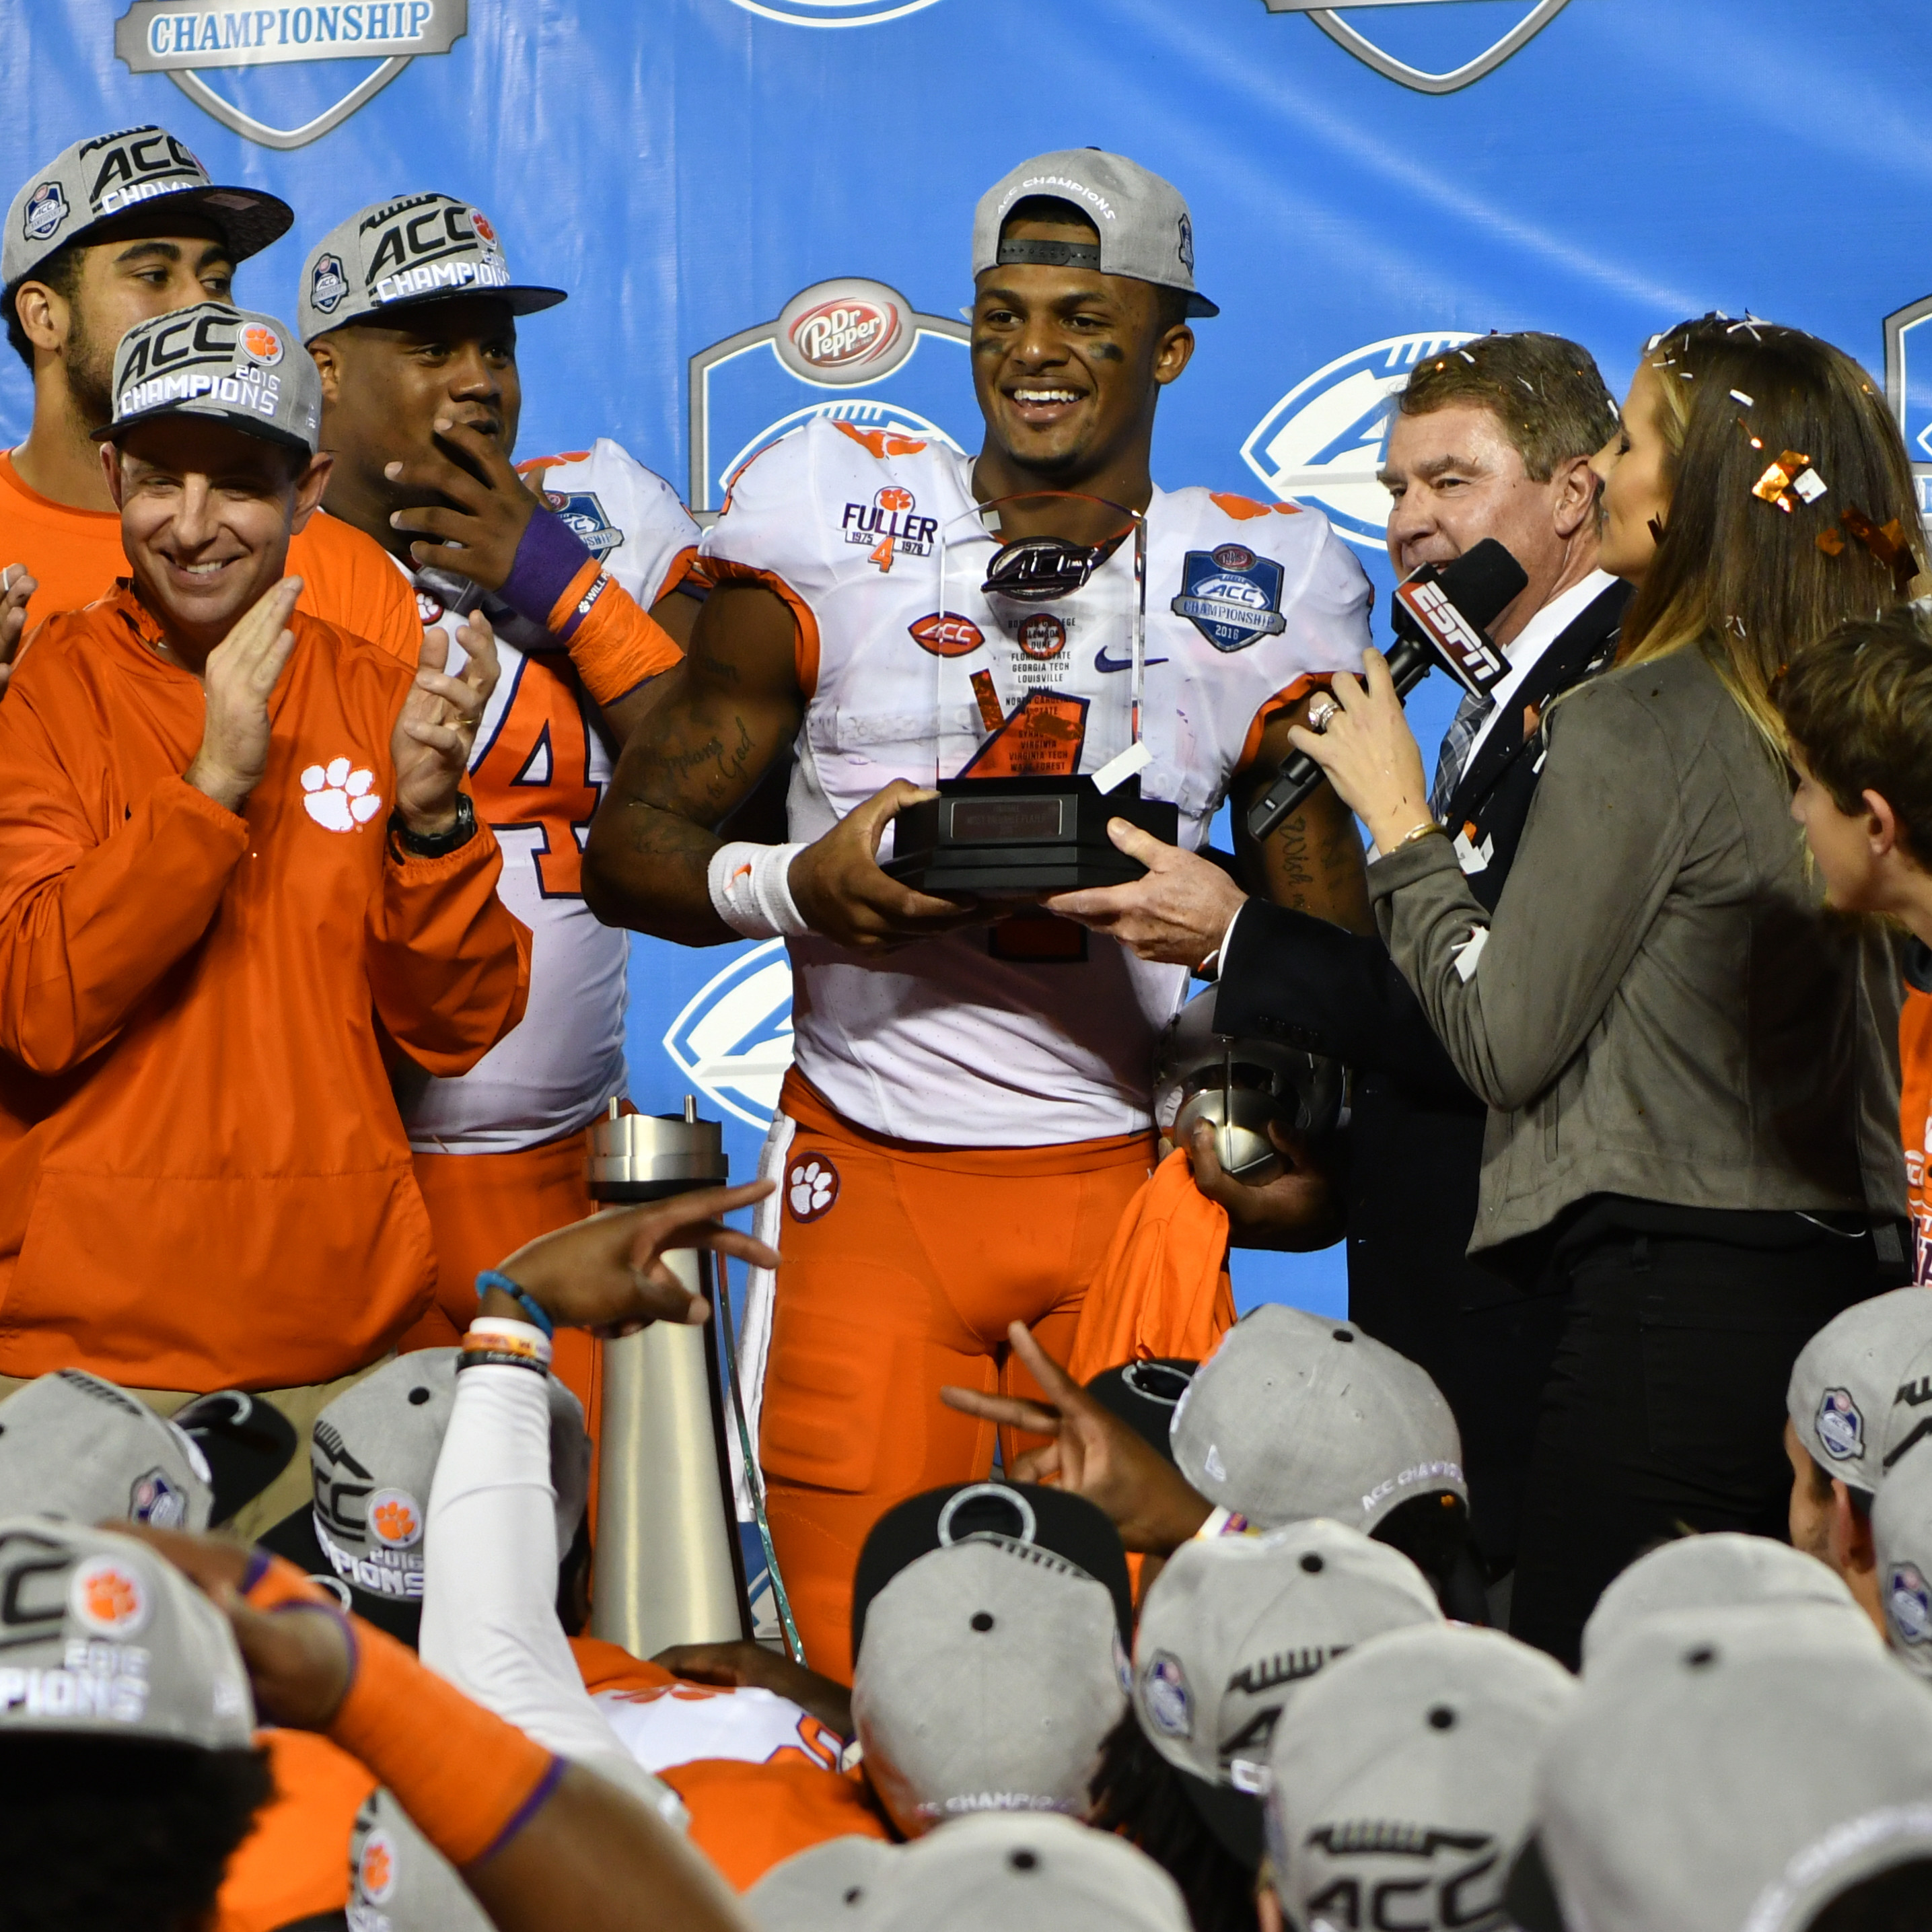 Tigers Claim ACC Crown